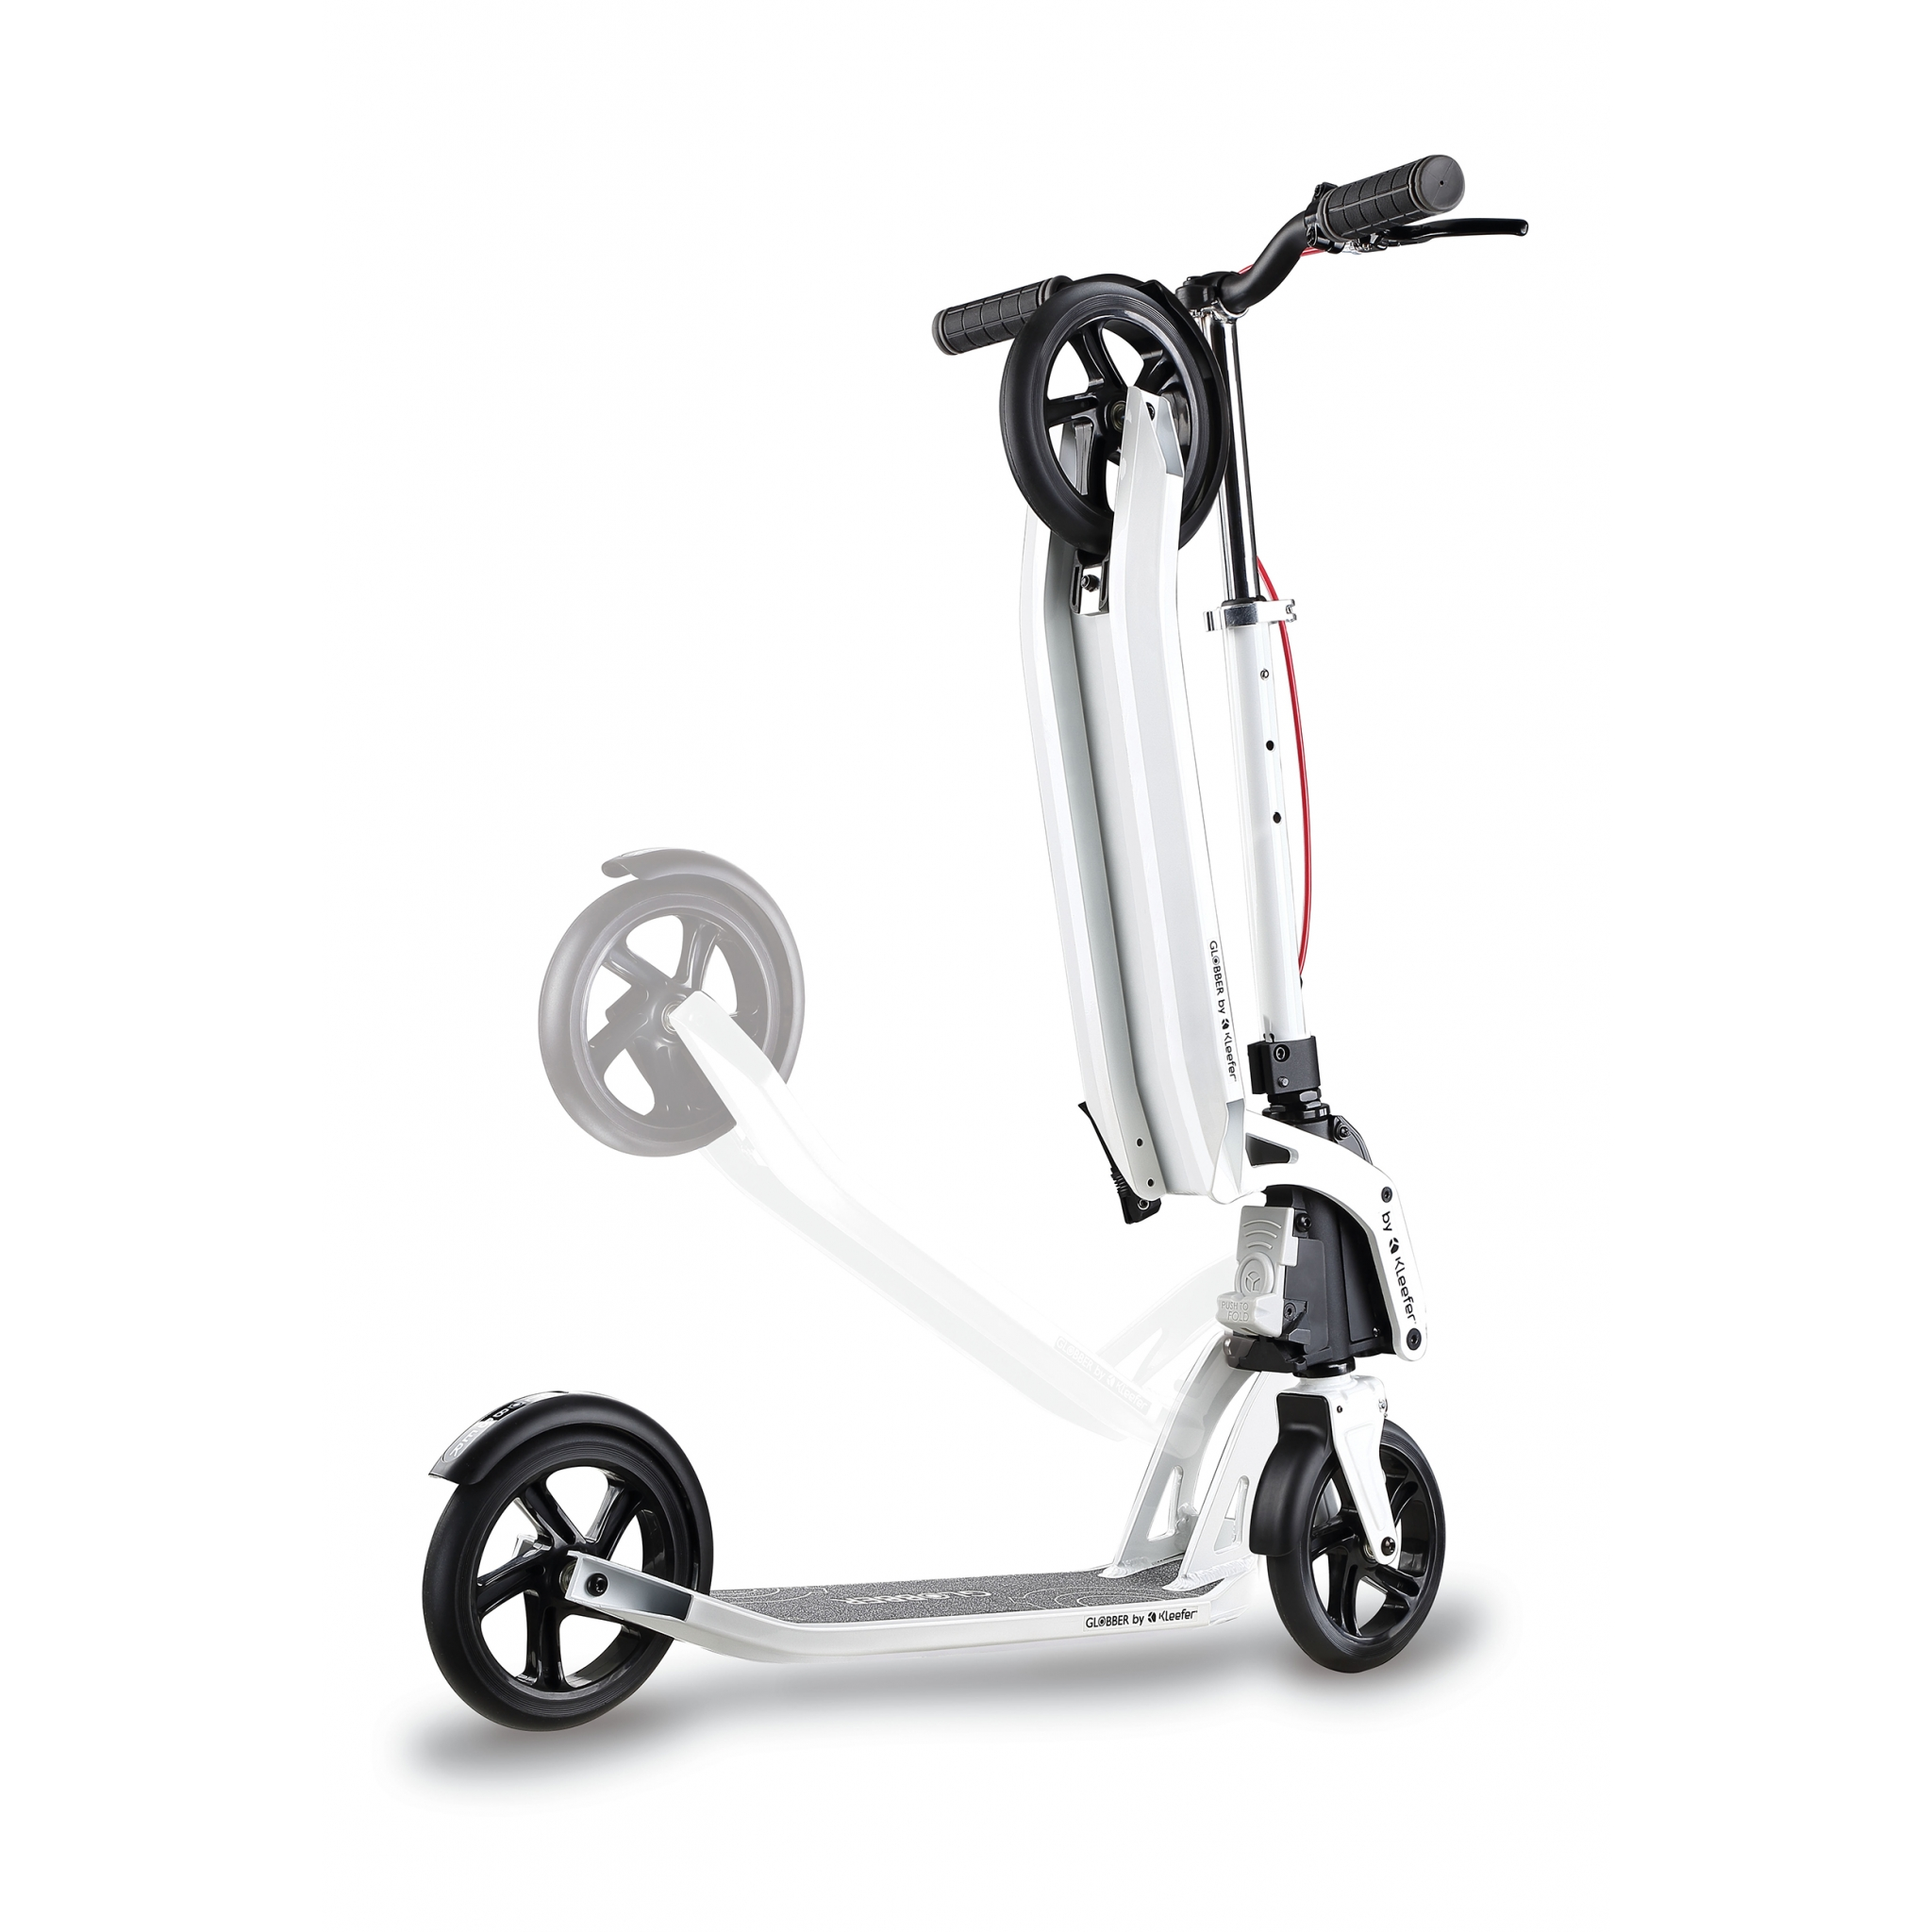 foldable scooter for adults with handbrake - Globber ONE K ACTIVE BR 2